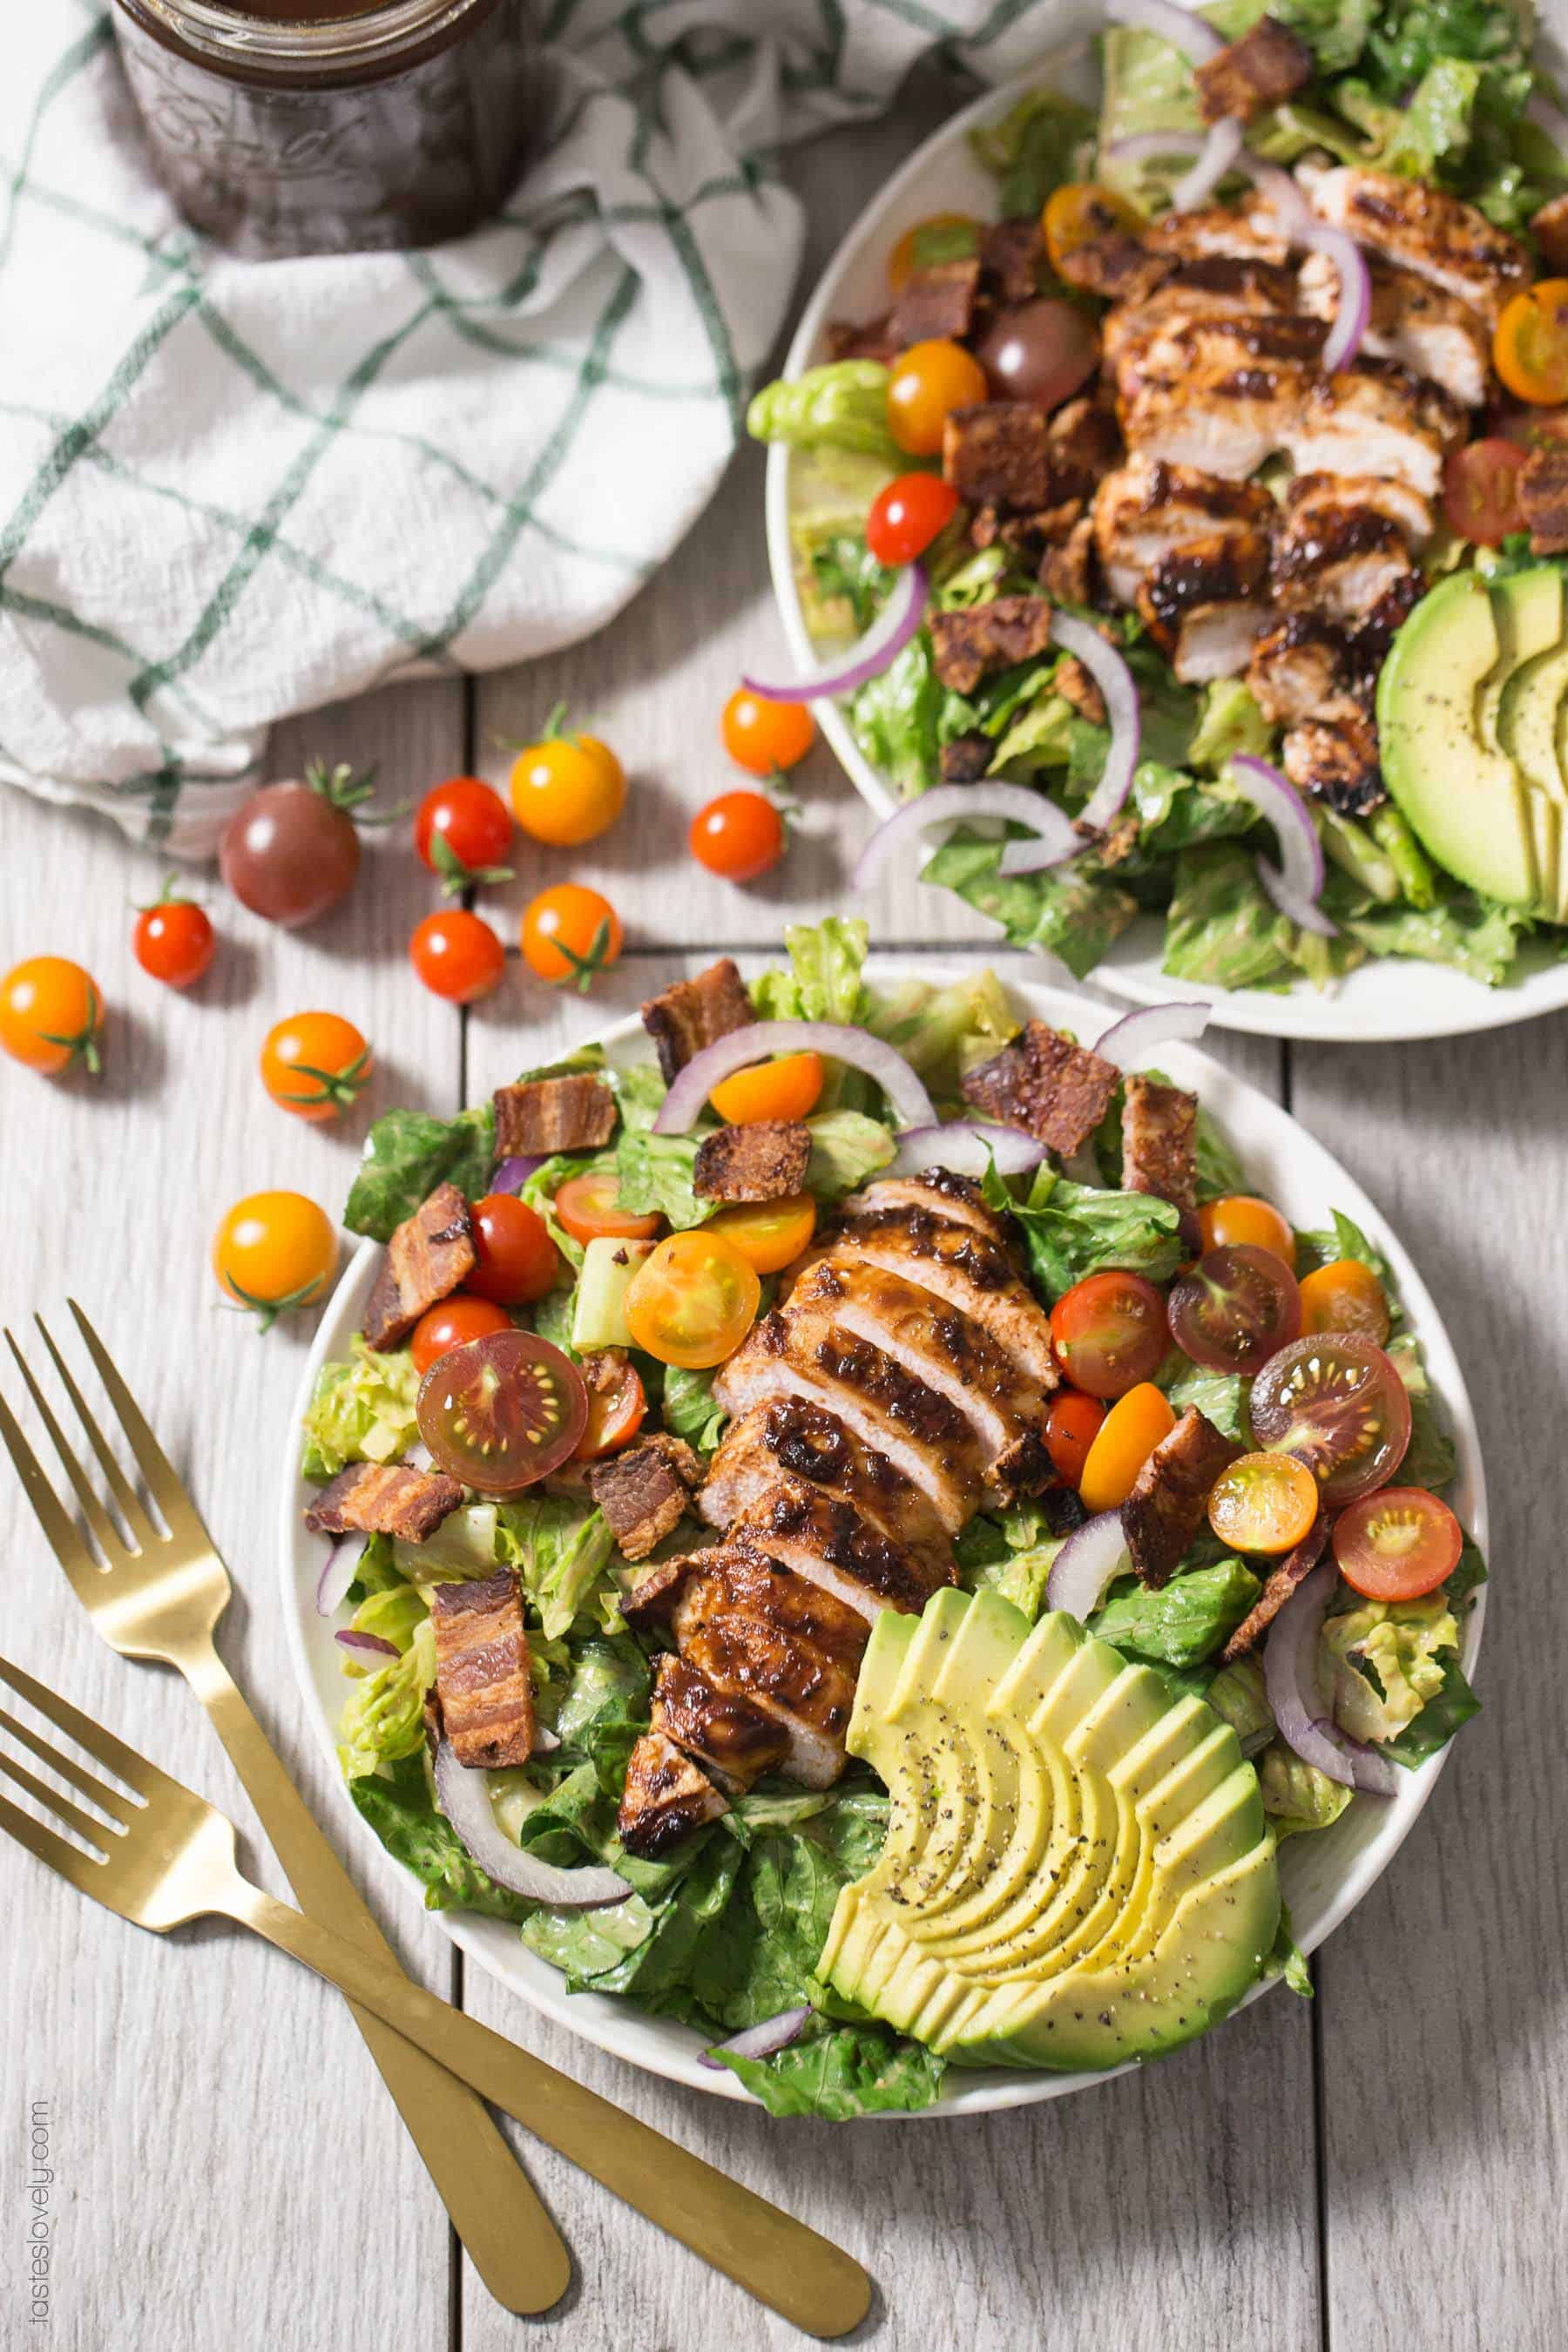 Paleo & Whole30 Grilled BBQ Chicken BLT Salad with bacon, grape tomatoes, red onions, avocado and a BBQ ranch dressing. Gluten free, dairy free, sugar free.